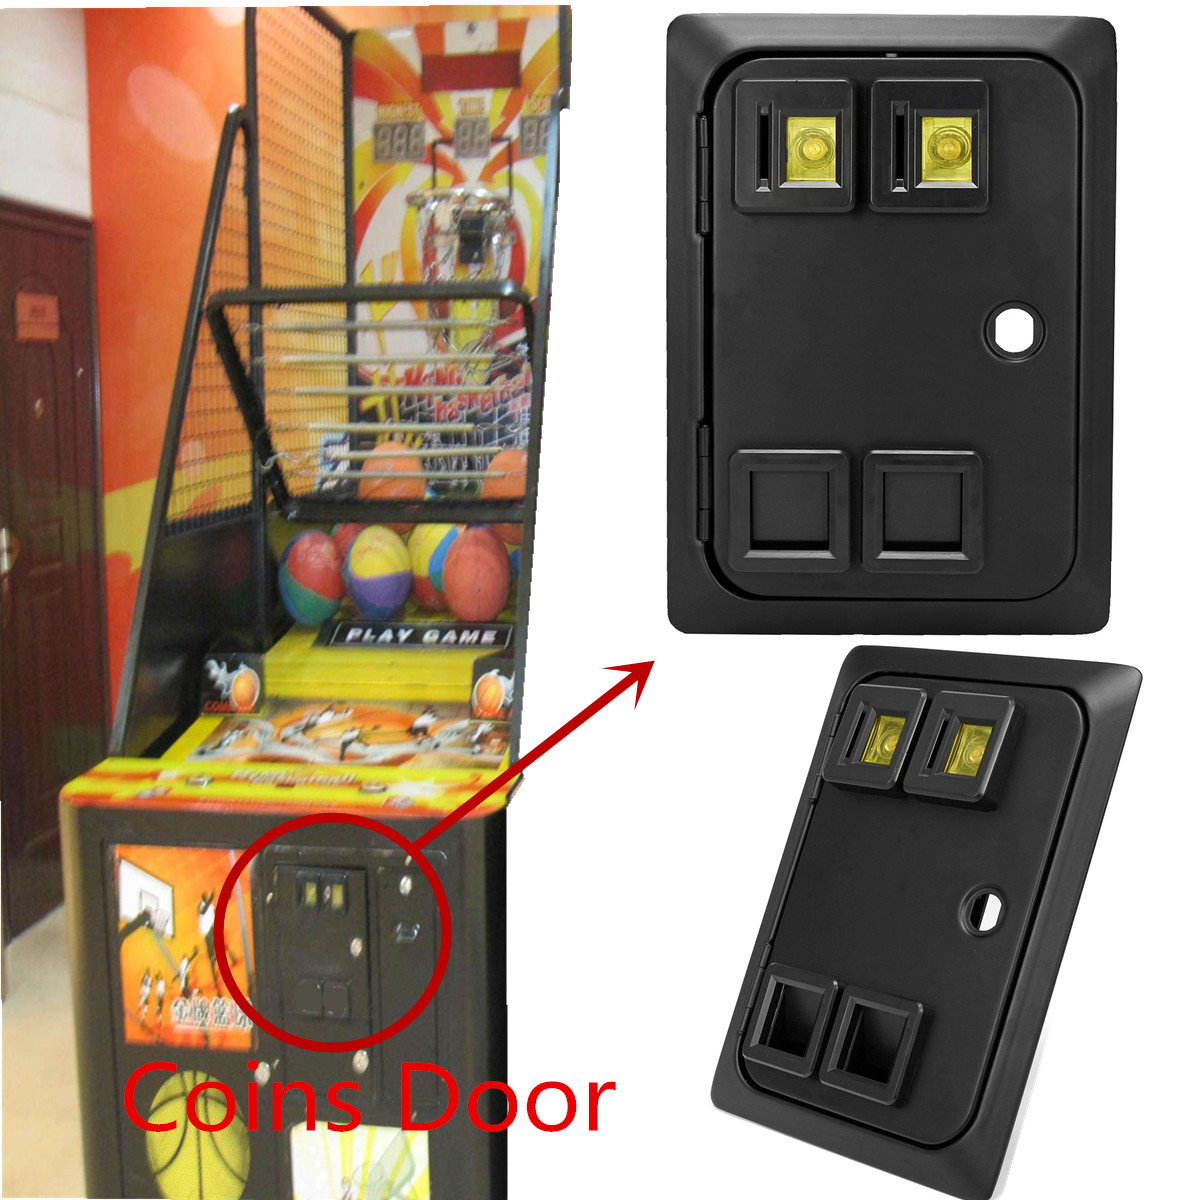 Arcade Or Pinball Game Machine Two Entry Coin Door Wells Gardner Style Coins Door Gate With Mech Coin Operated Game Console PartArcade Or Pinball Game Machine Two Entry Coin Door Wells Gardner Style Coins Door Gate With Mech Coin Operated Game Console Part